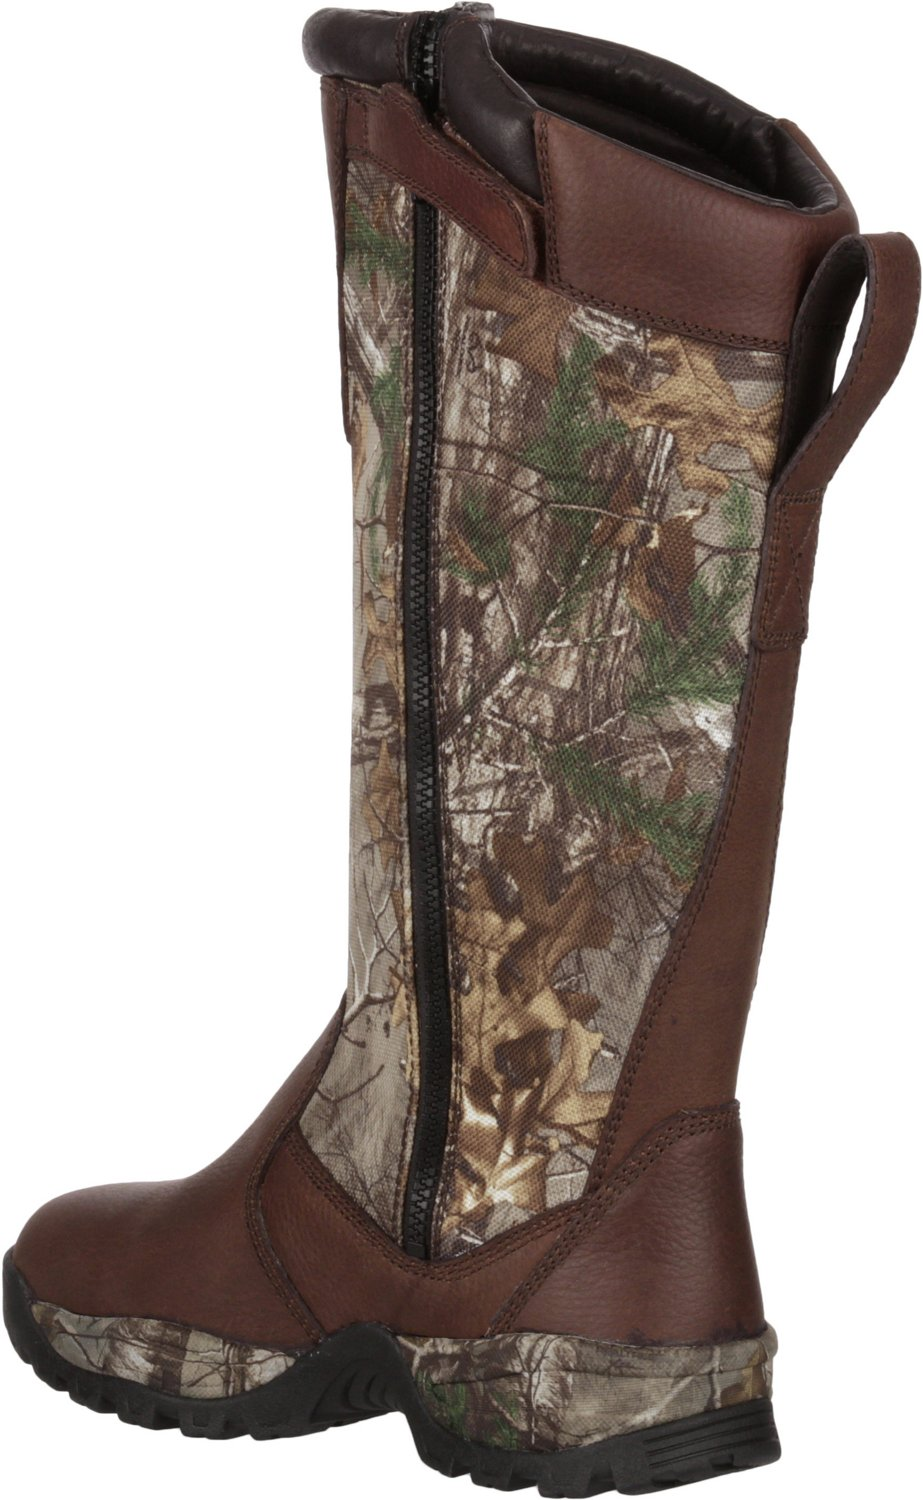 Magellan Outdoors Men's Snake Shield Armor II Hunting Boots - view number 1